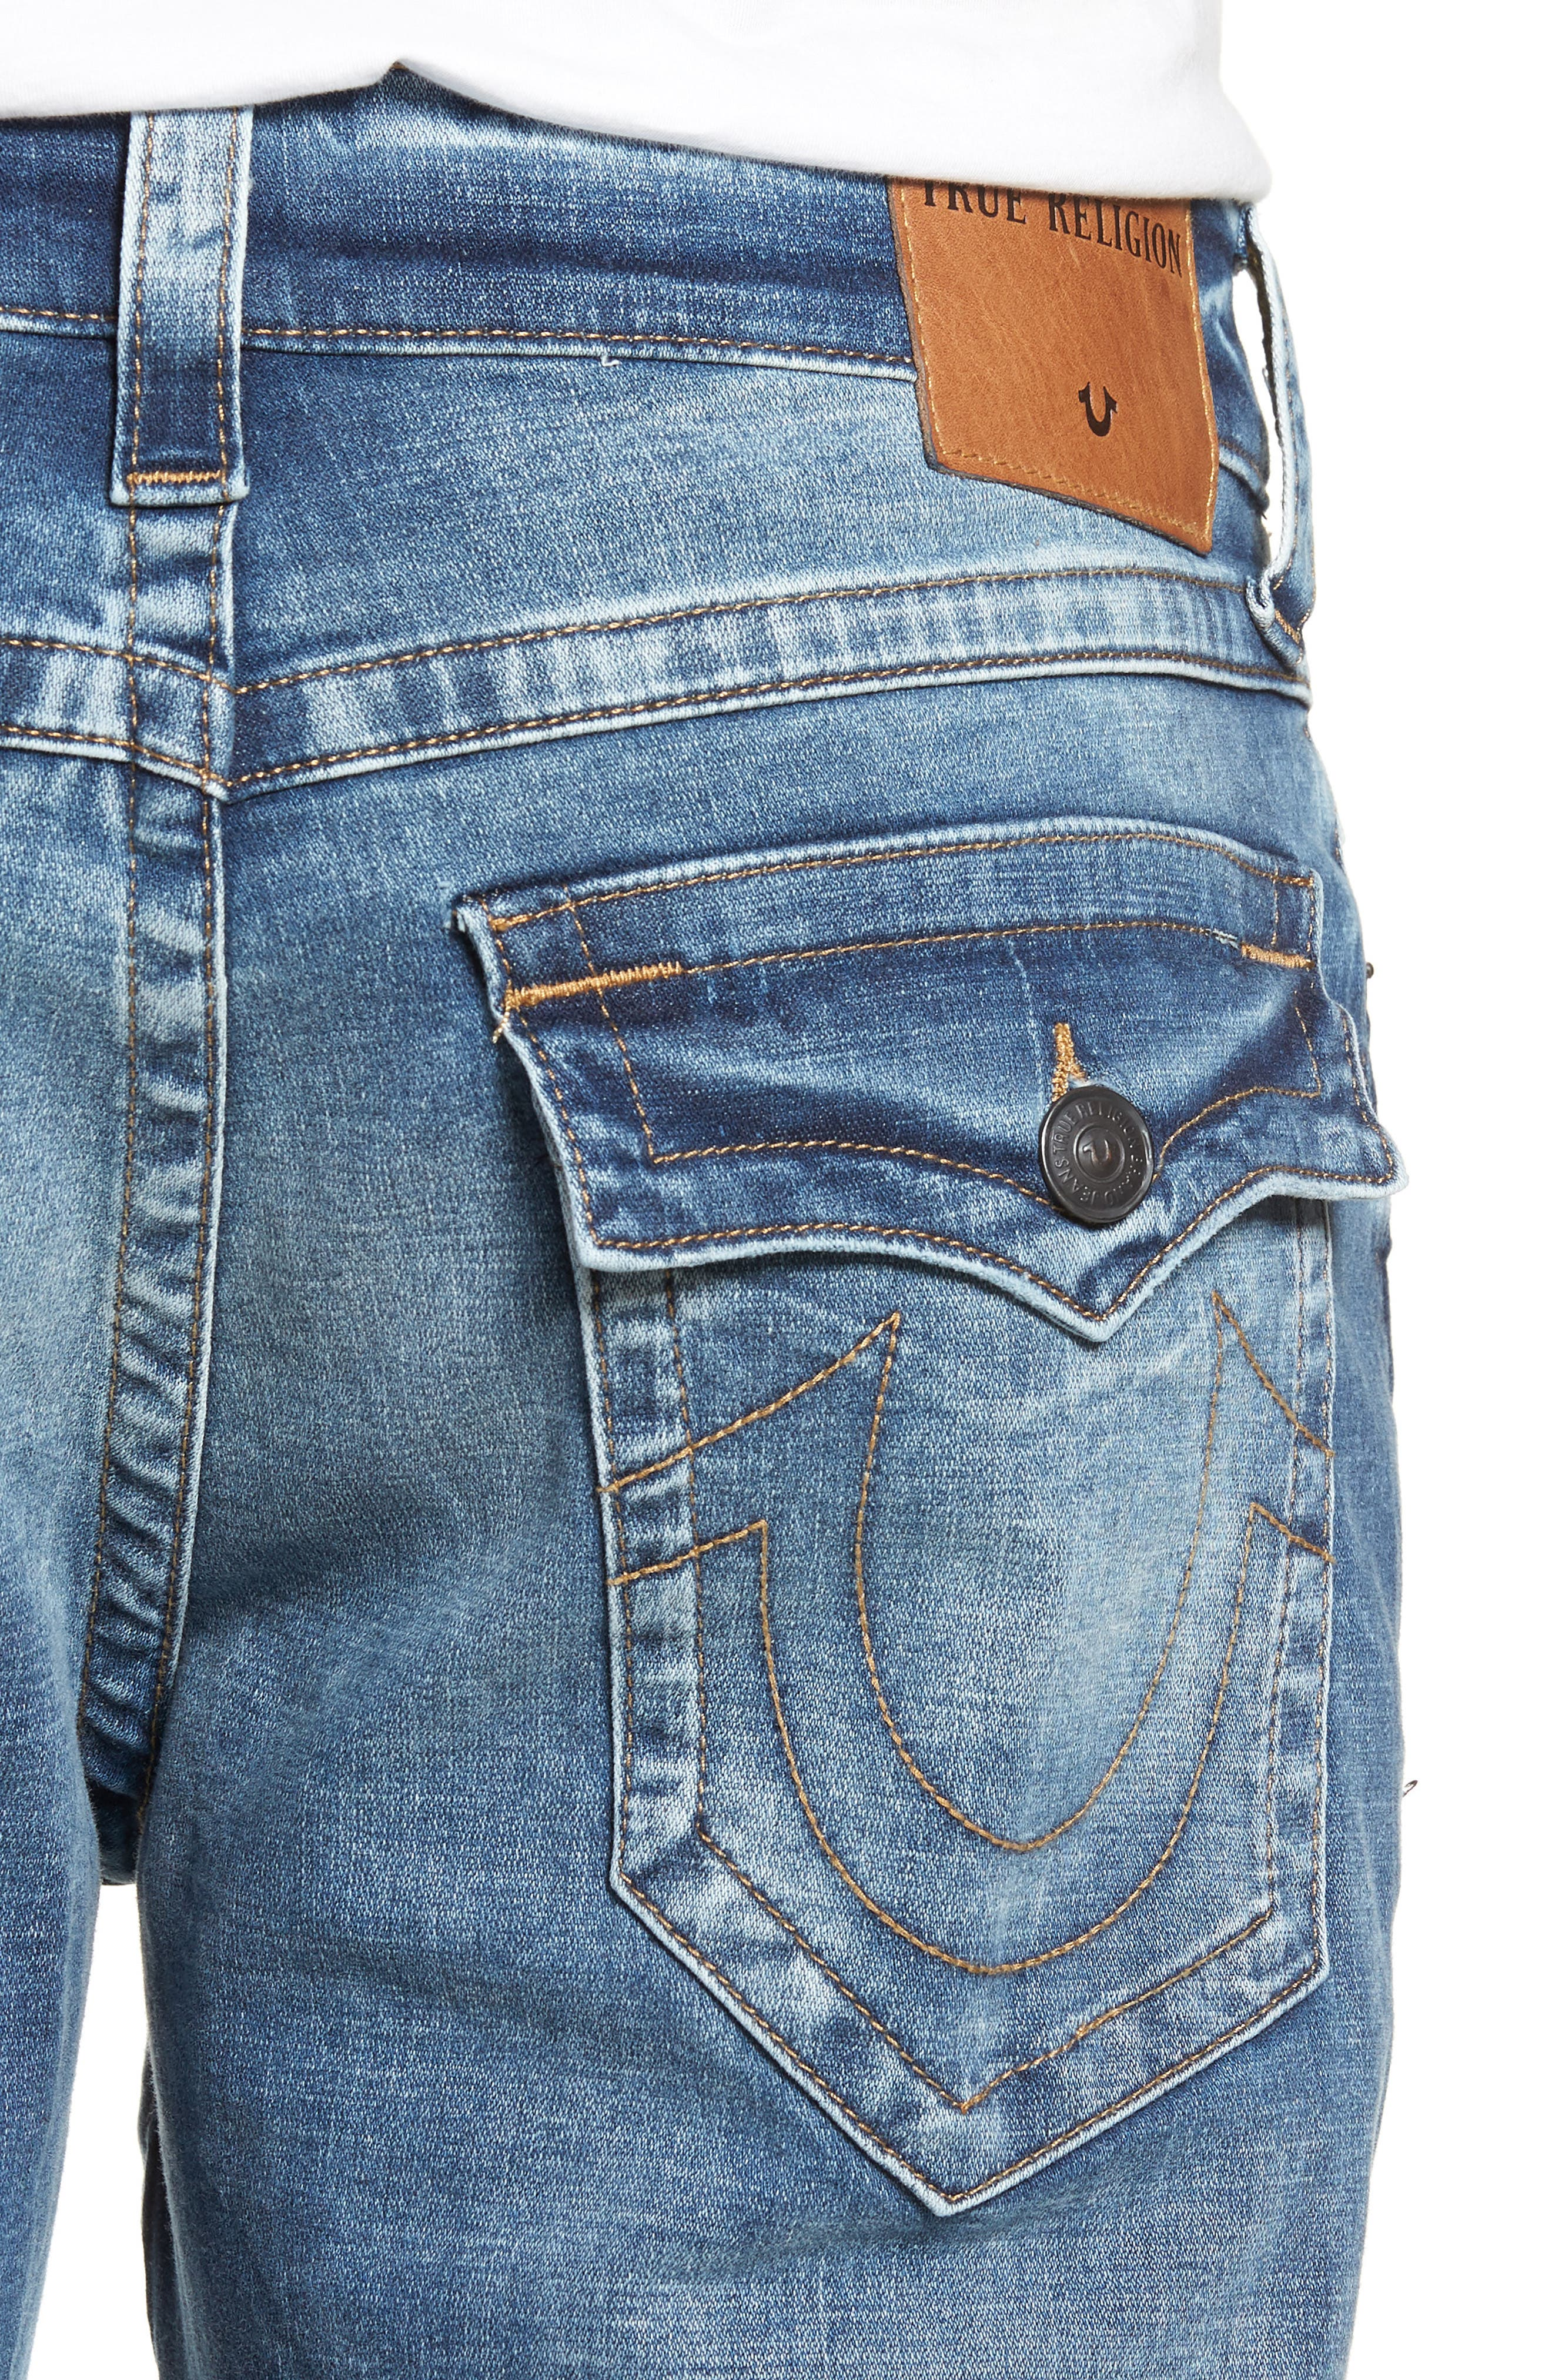 Ricky Relaxed Fit Jeans,                             Alternate thumbnail 3, color,                             Static Blue